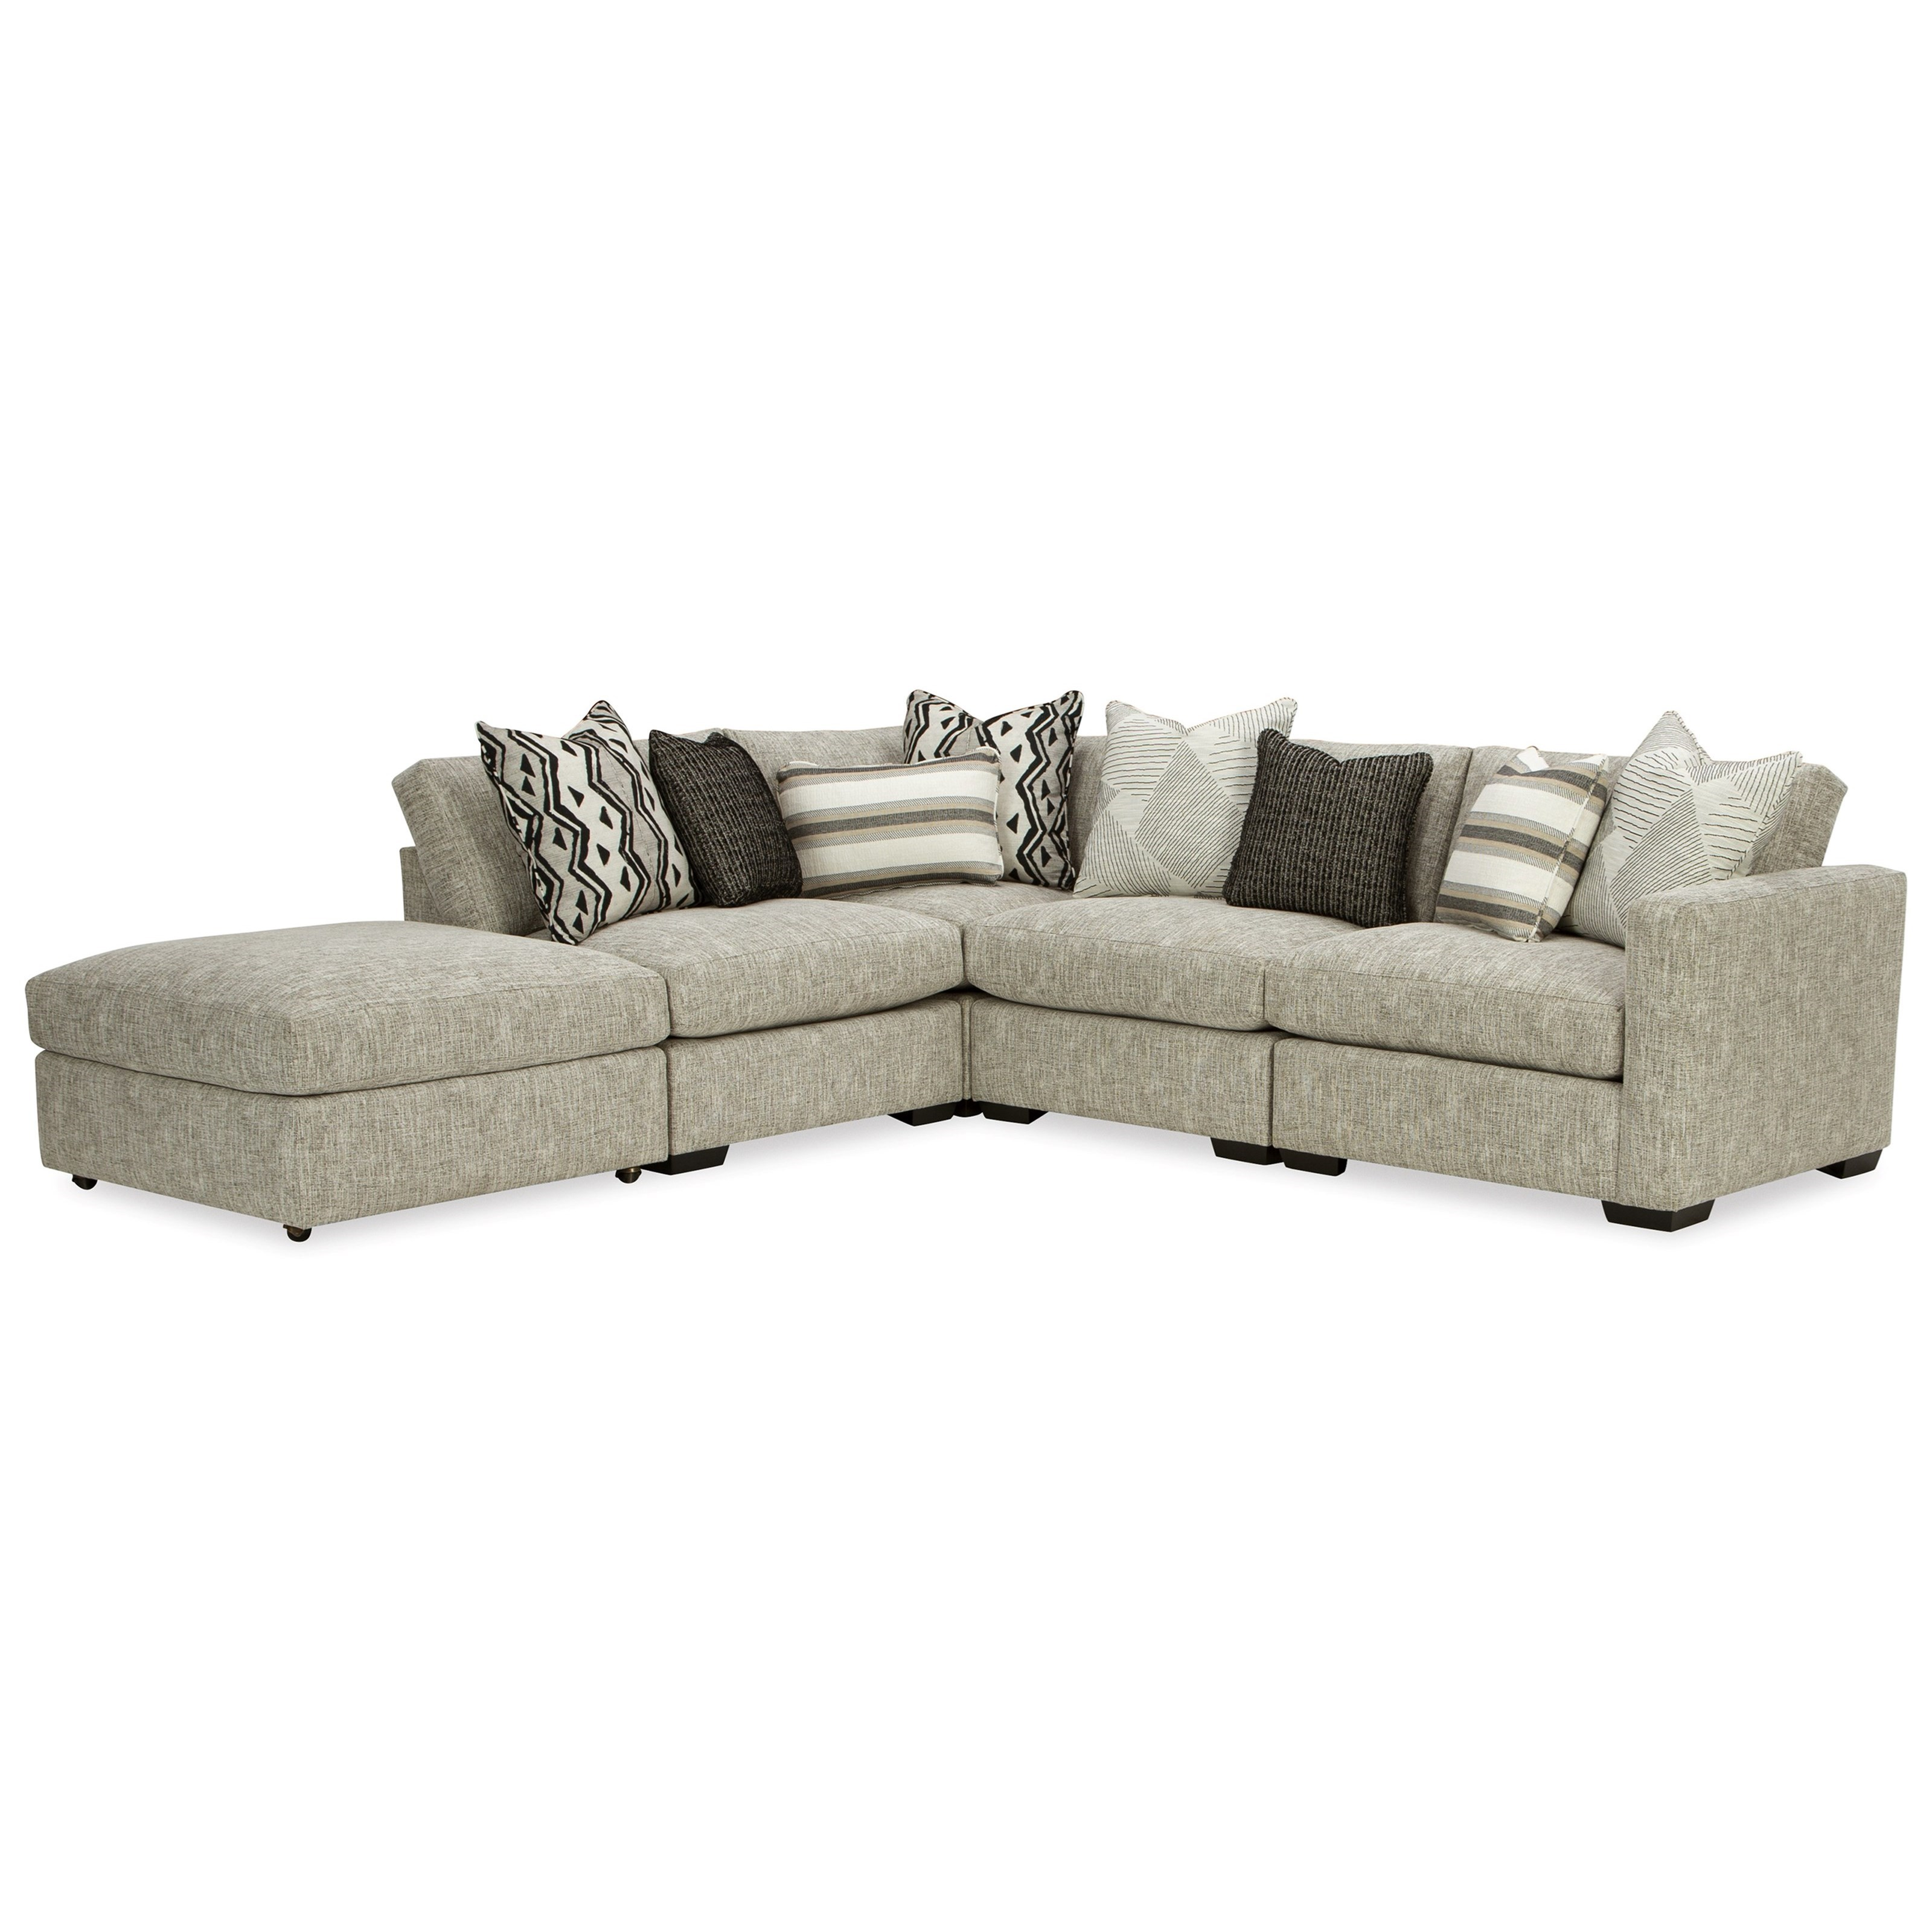 792750BD 5-Piece Sectional Sofa by Craftmaster at Dean Bosler's